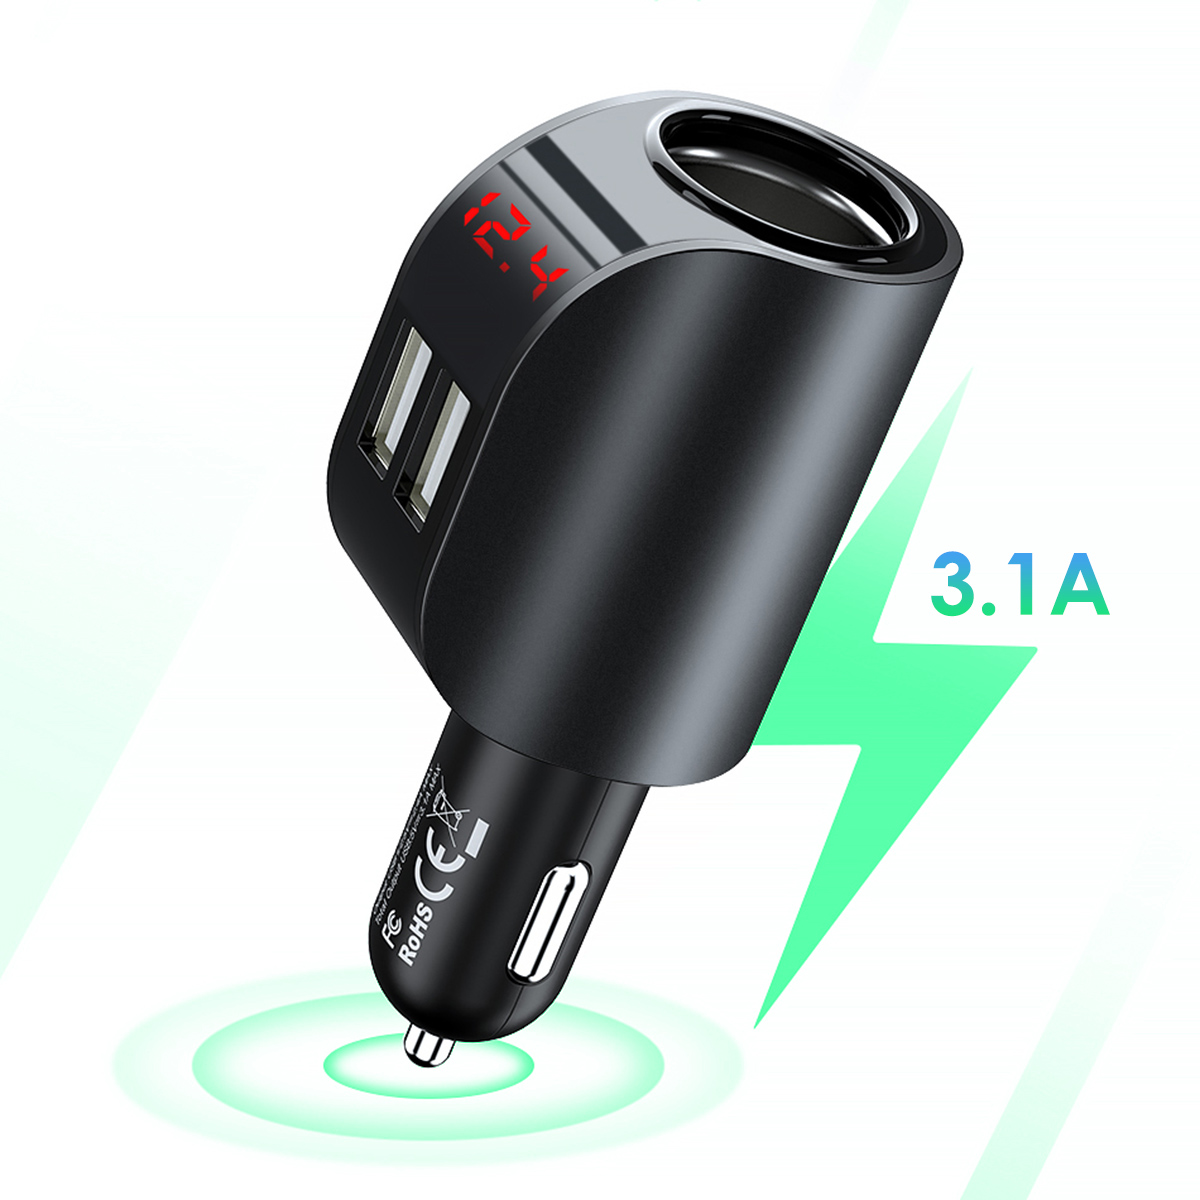 3.1A Dual USB Car Charger Mobile Phone Charger 12-24V Car Cigarette Lighter Fast Charging Adapter With Digital Display